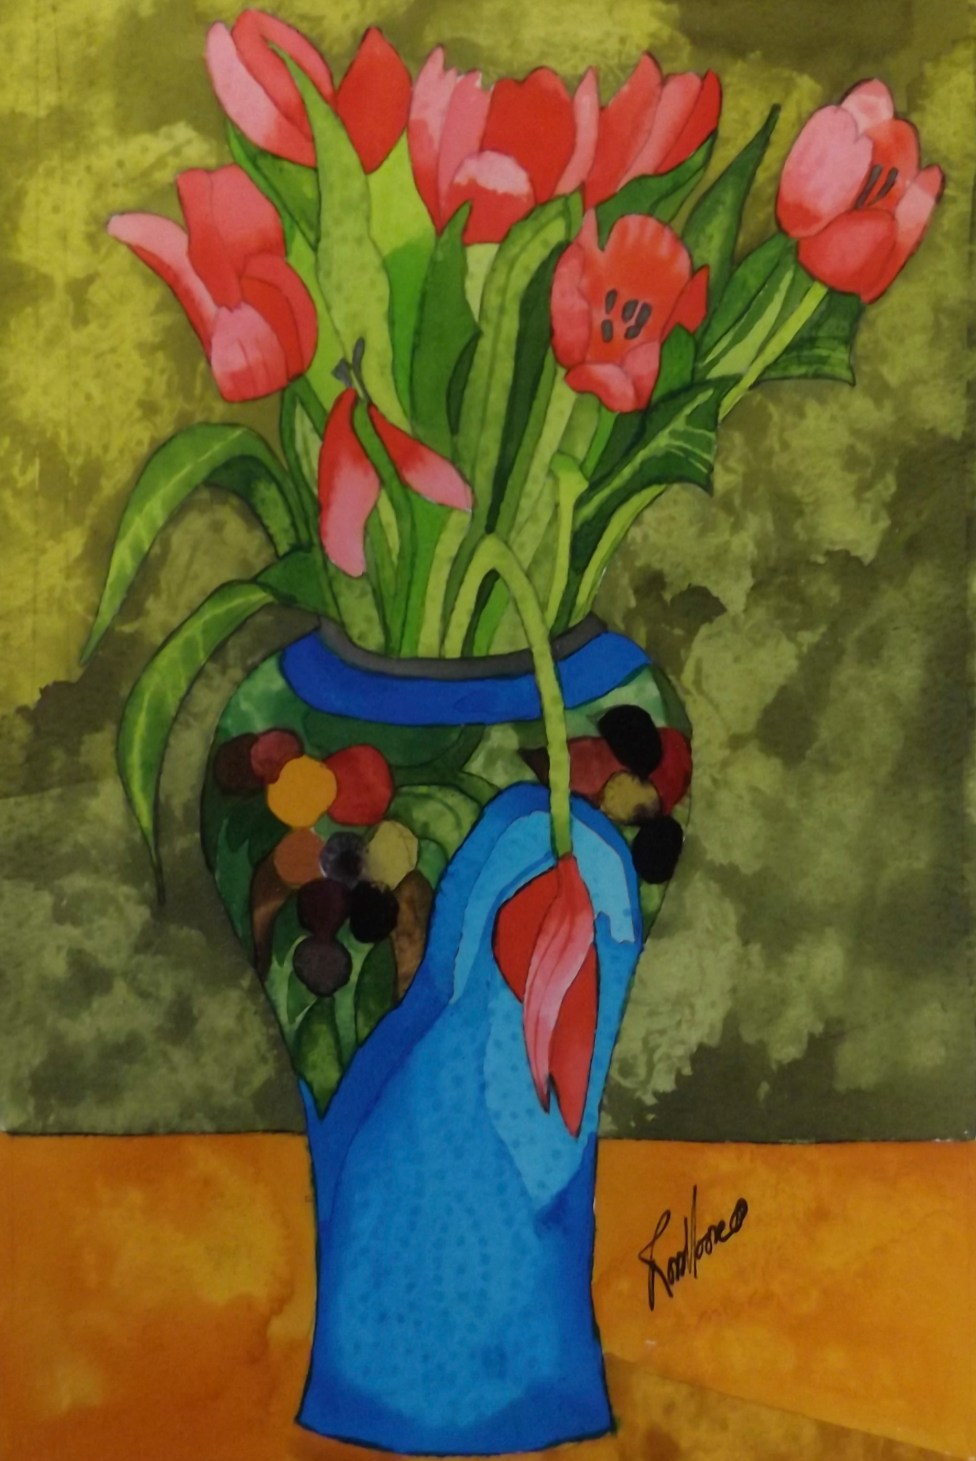 Tulips. Inks and Dyes. 20 x 28 cm. POA